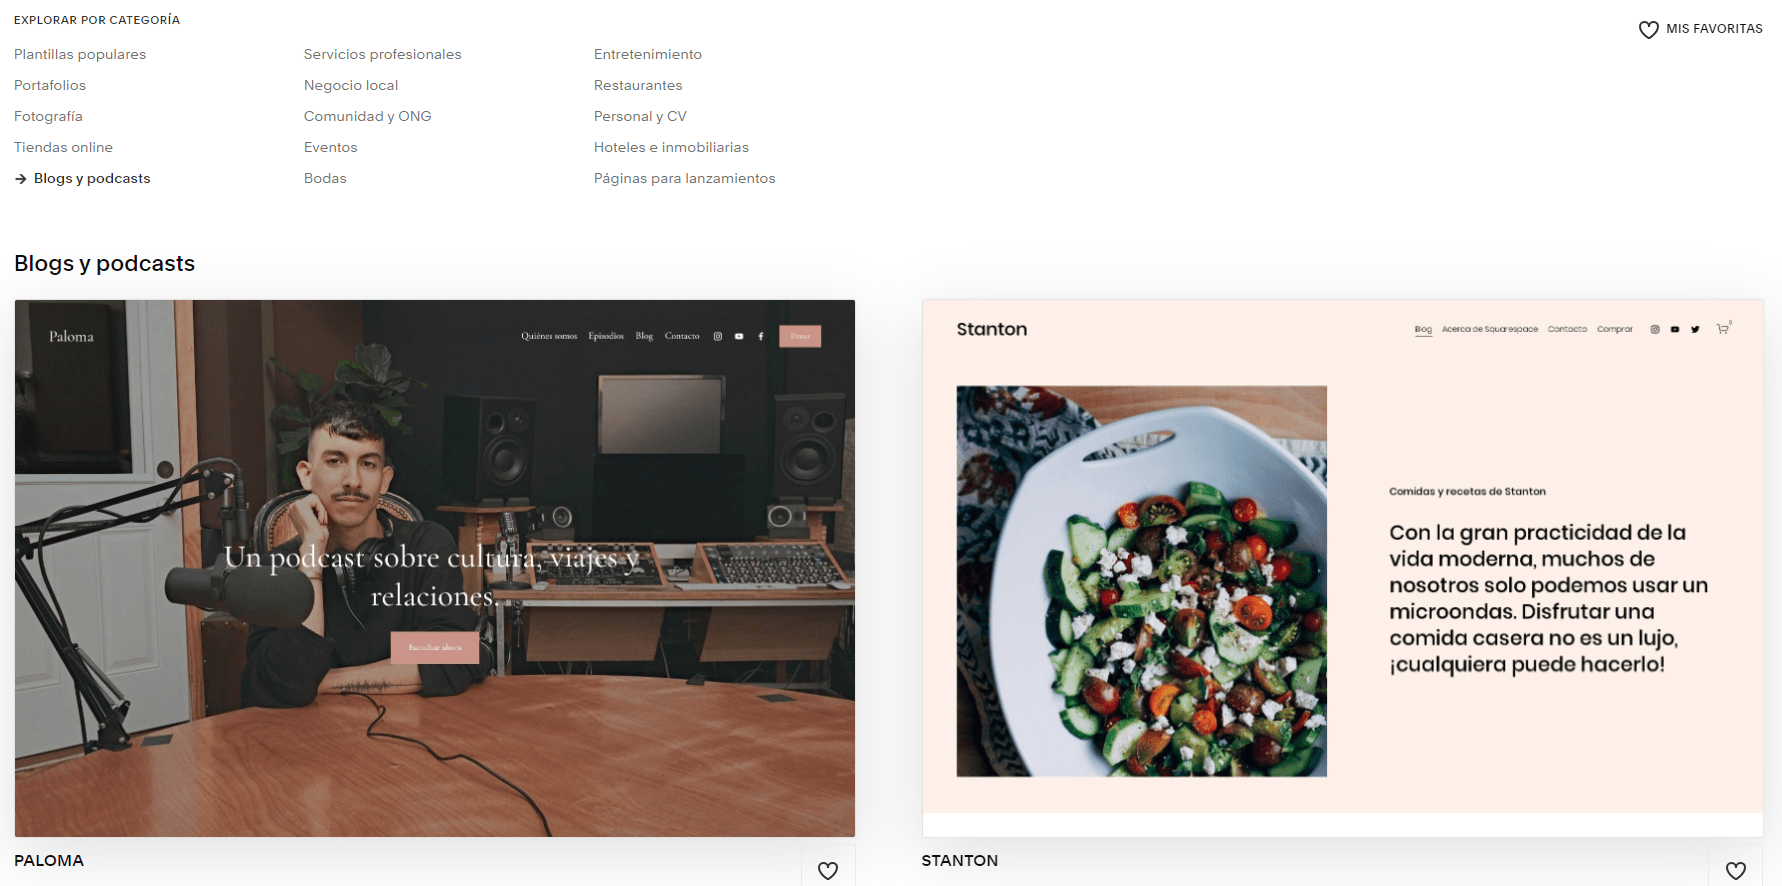 Squarespace Blogs & Podcasts templates